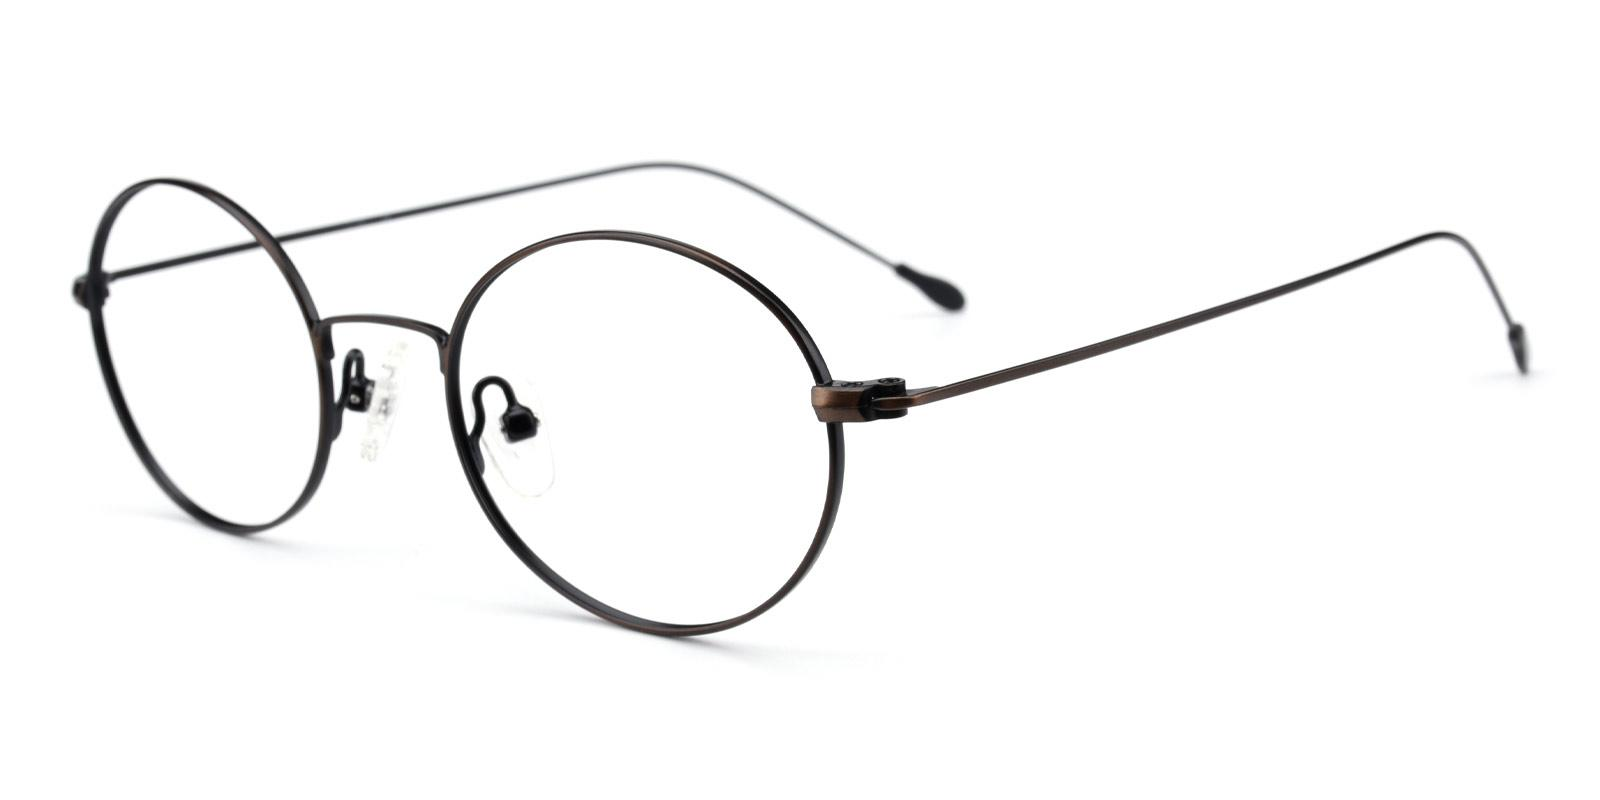 Bertha-Brown-Oval-Metal-Eyeglasses-detail